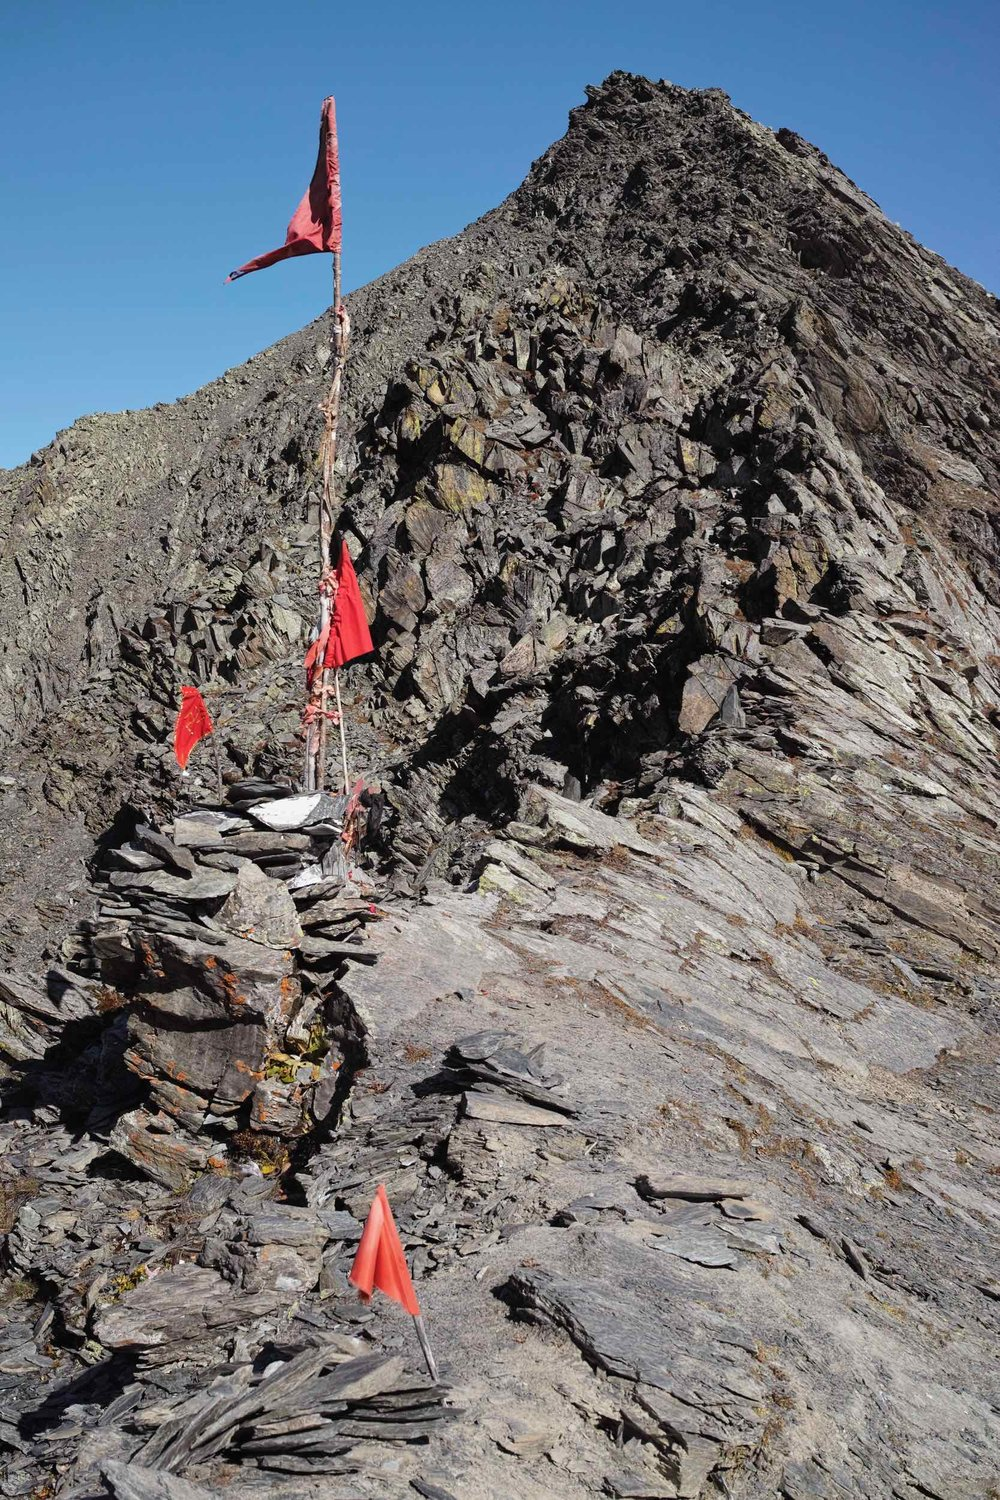 Kalah Pass is decked in a few prayer flags. The major sharp ridge marks the 4624m mountain pass